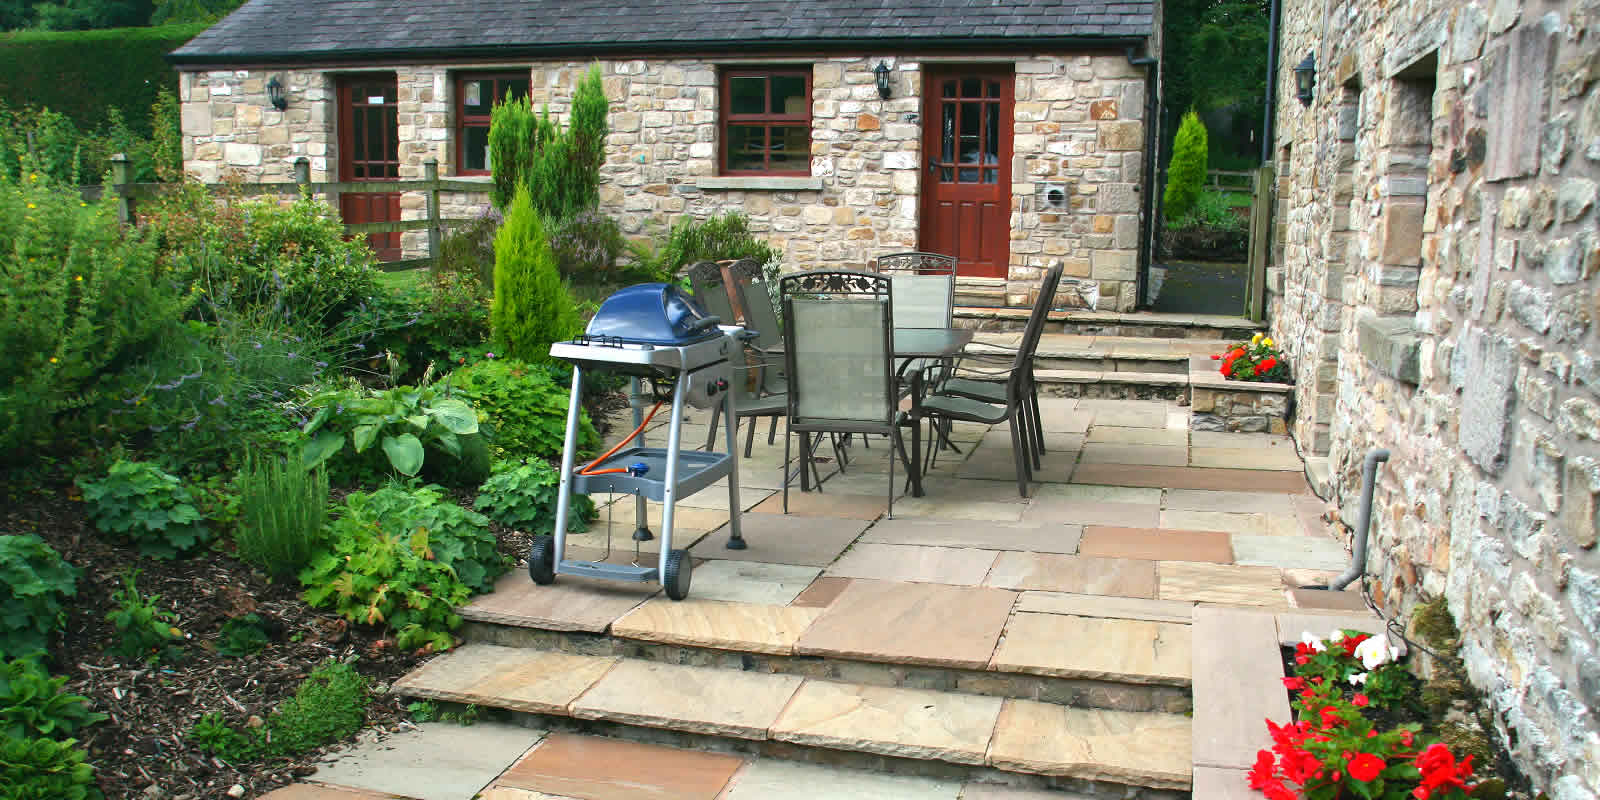 Beech Tree Cottage patio. Luxury Holiday Cottages Lancashire